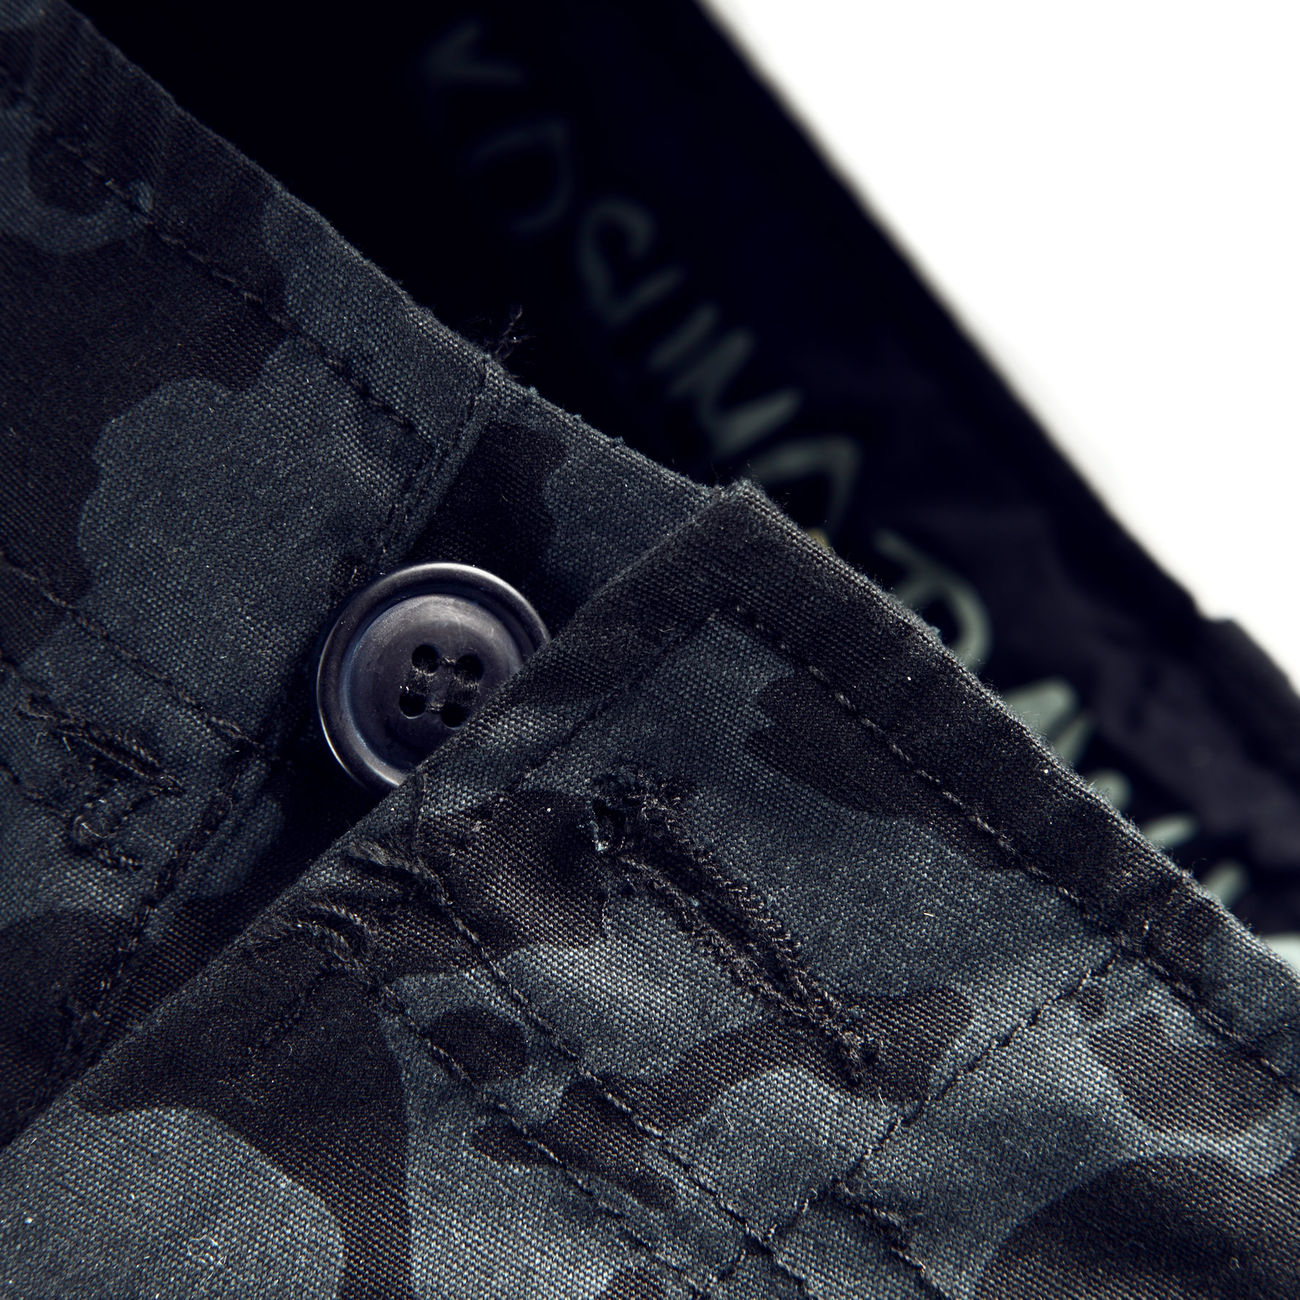 Kosumo Shorts stone washed night camo 2